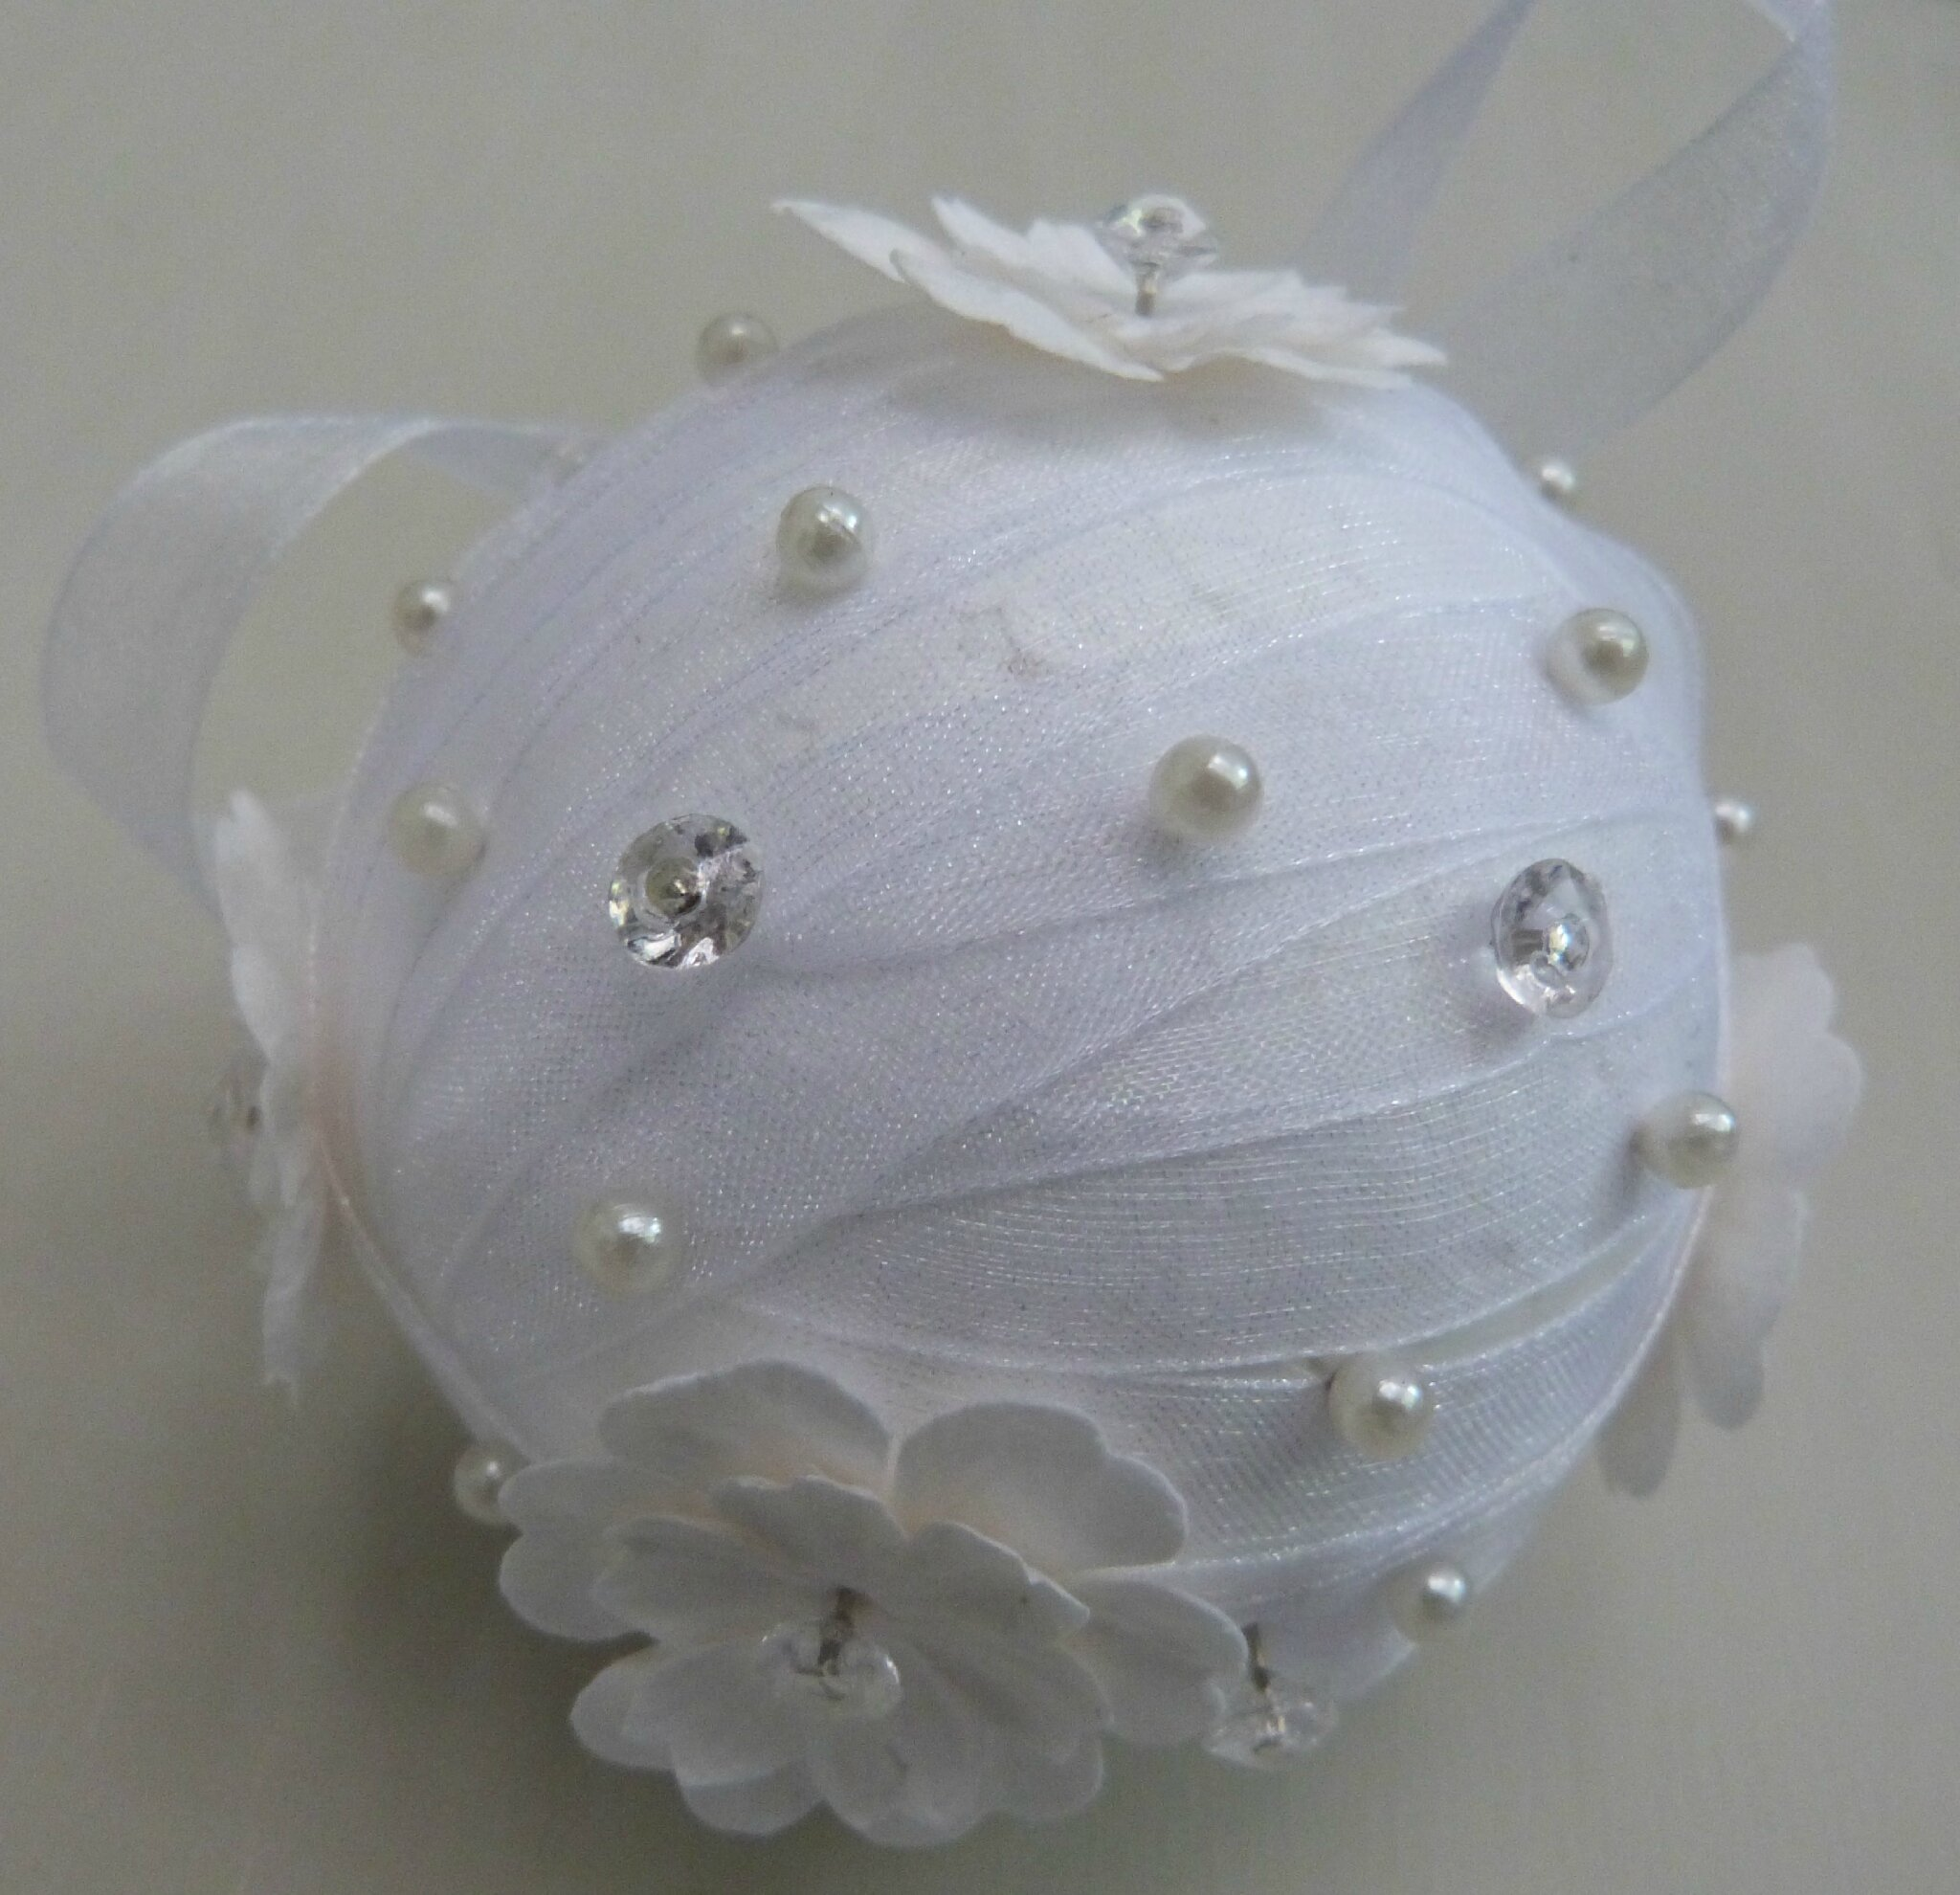 Boule de no l ruban organza nfm nath fait main for Idee deco avec des photos